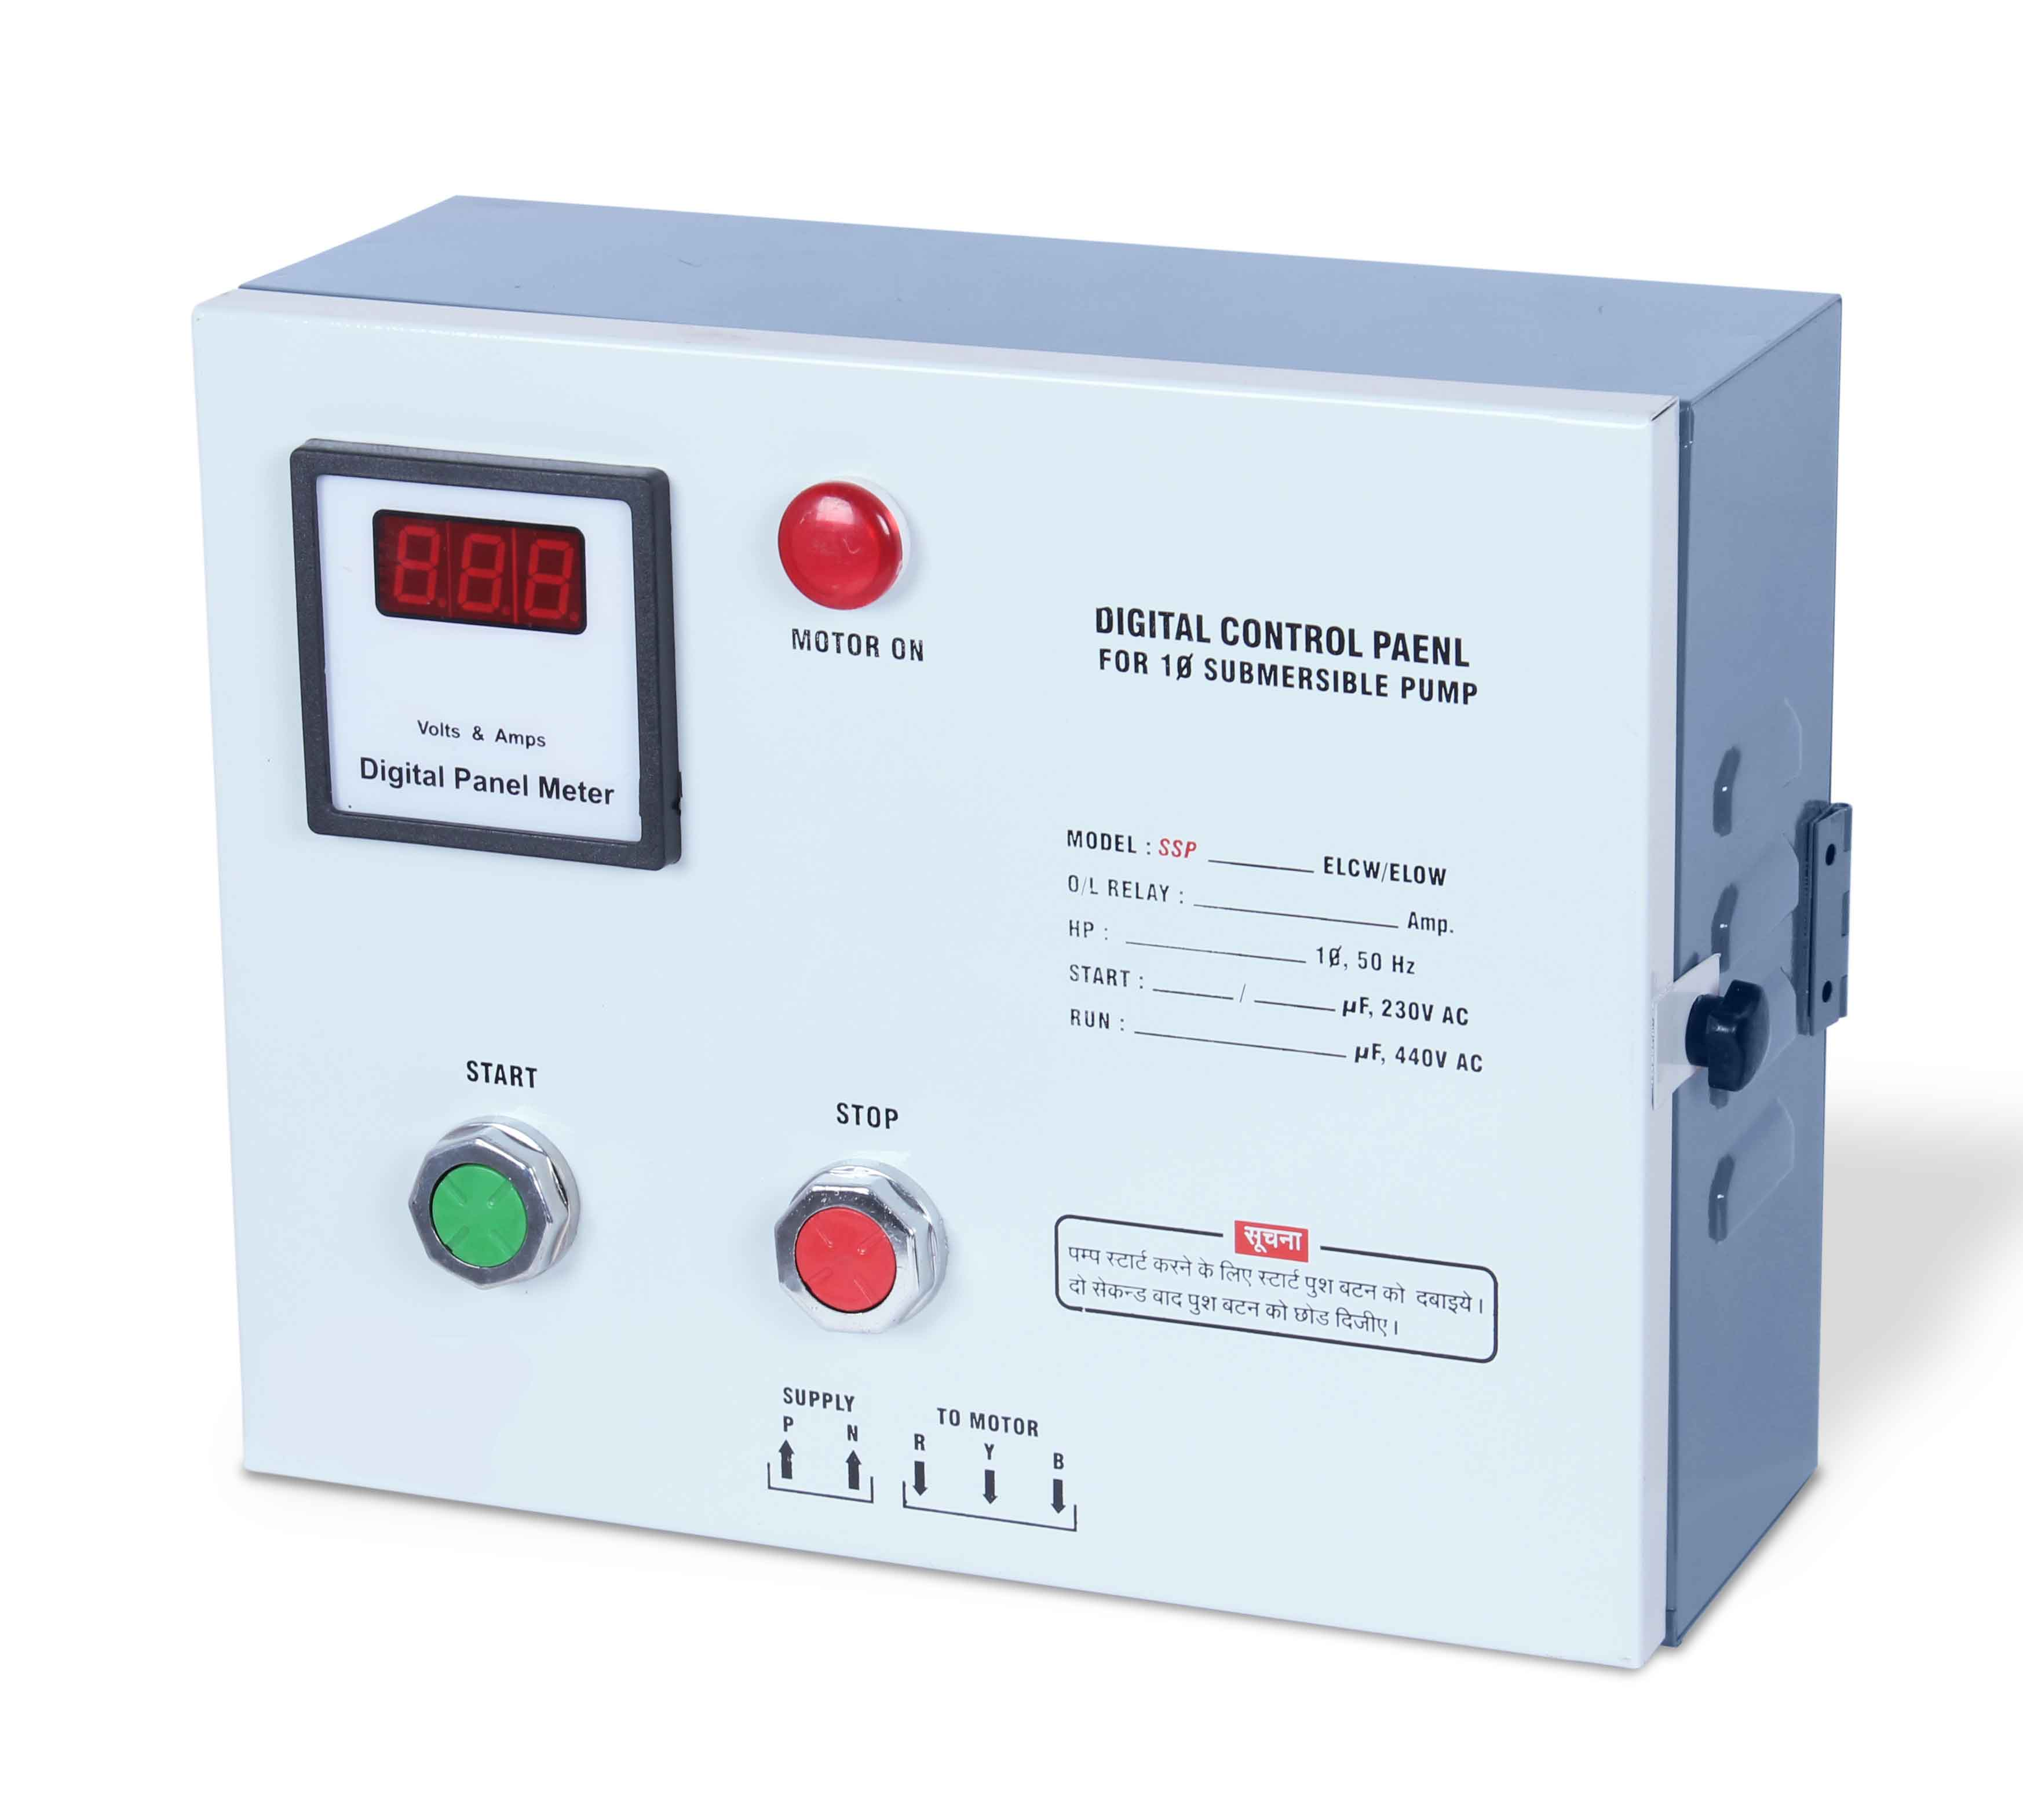 ELCW DIGI Single phase digital motor starter suitable for 2 HP submersible motor with overload protections by bi metallic relay